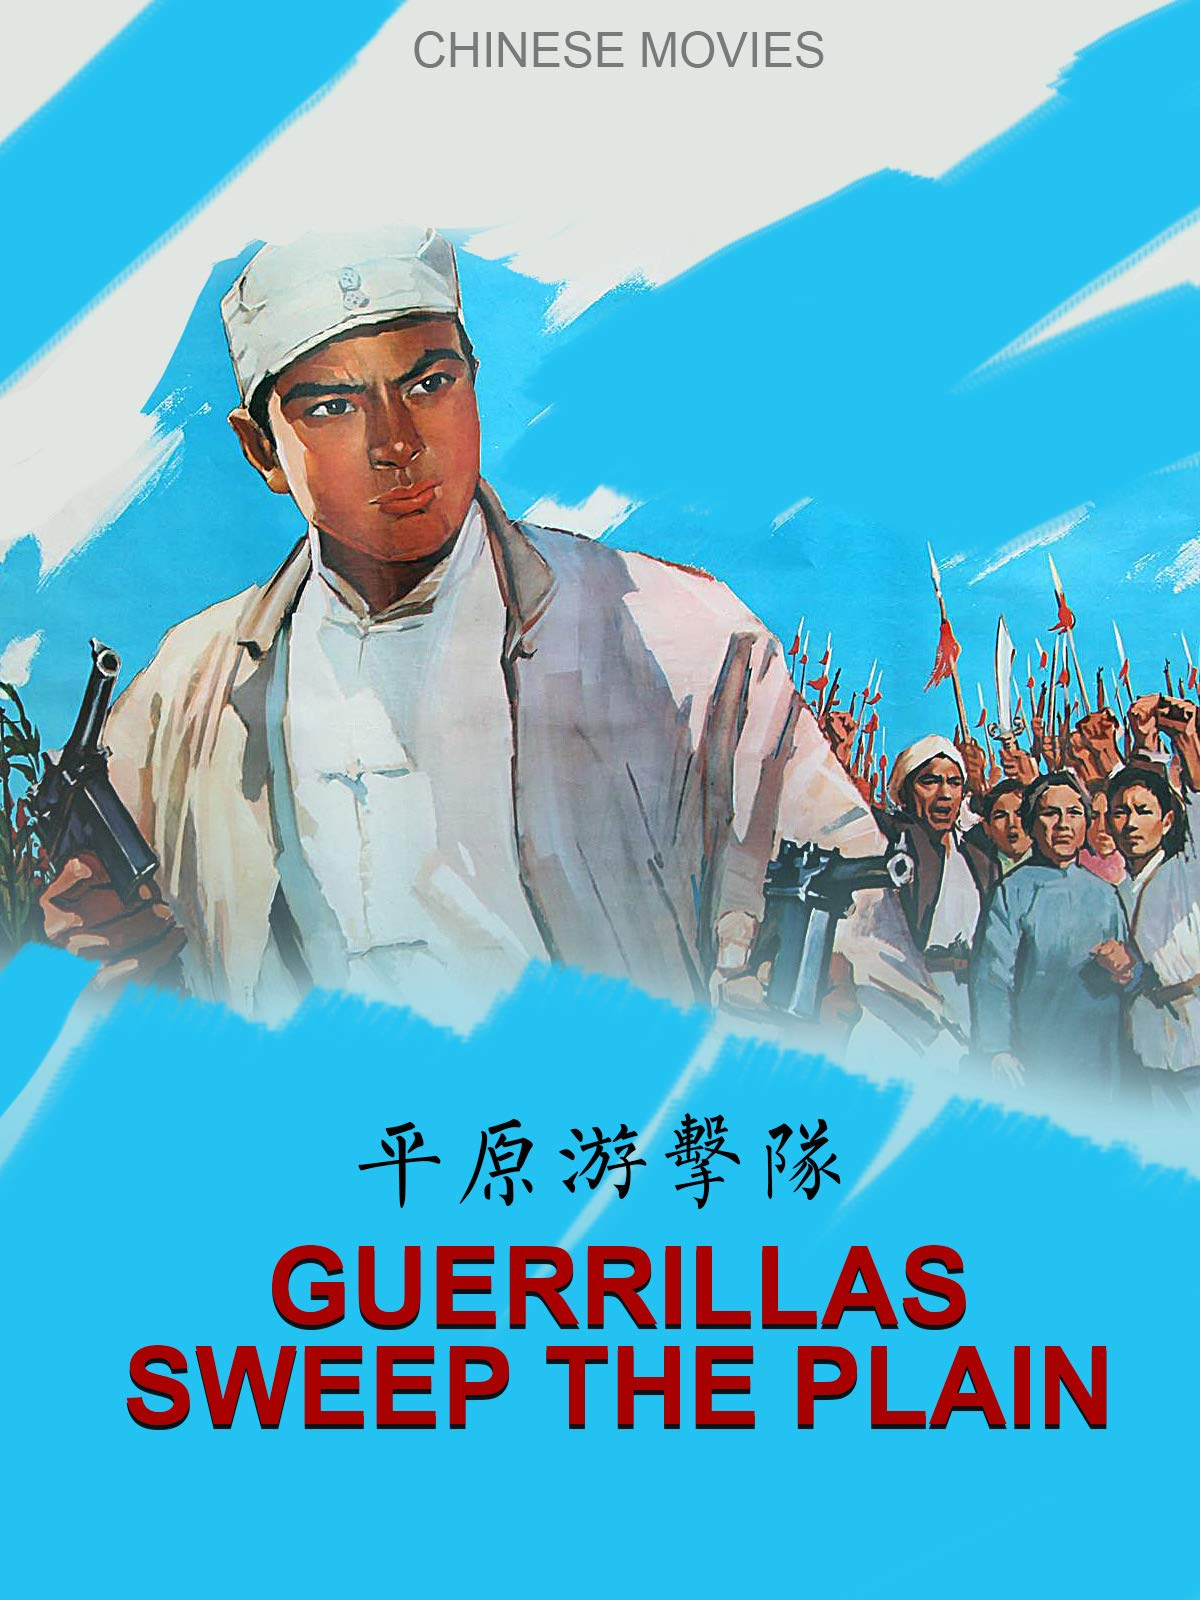 Chinese movies-Guerrillas sweep the plain